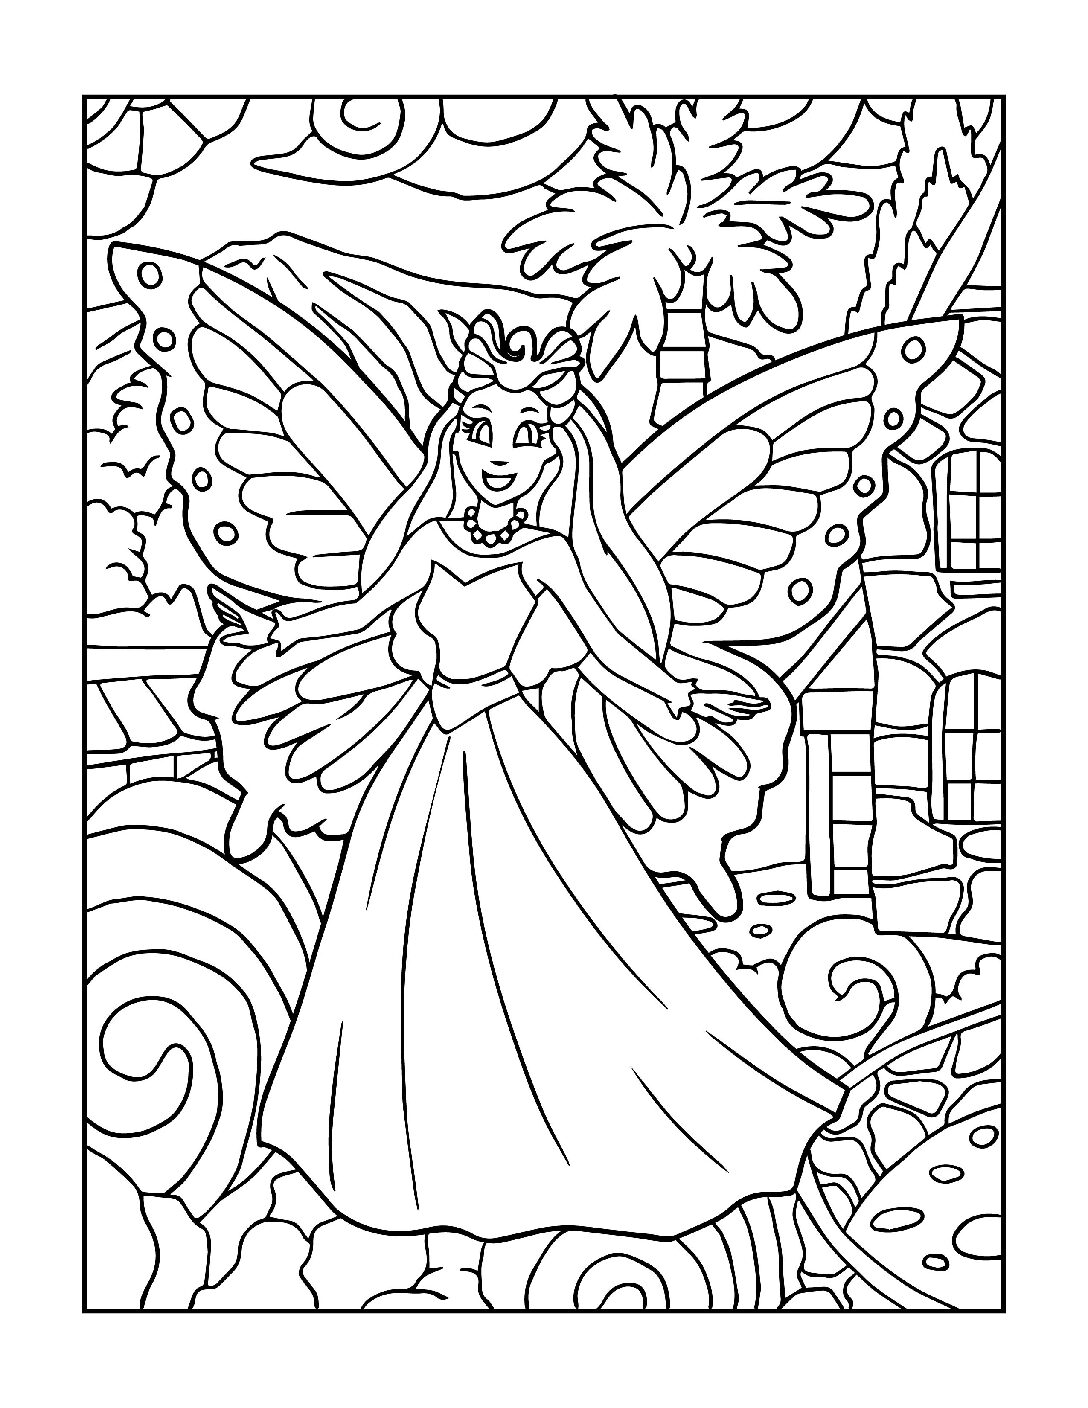 Coloring-Pages-Fairies-10-01-pdf Free Printable Fairy Colouring Pages